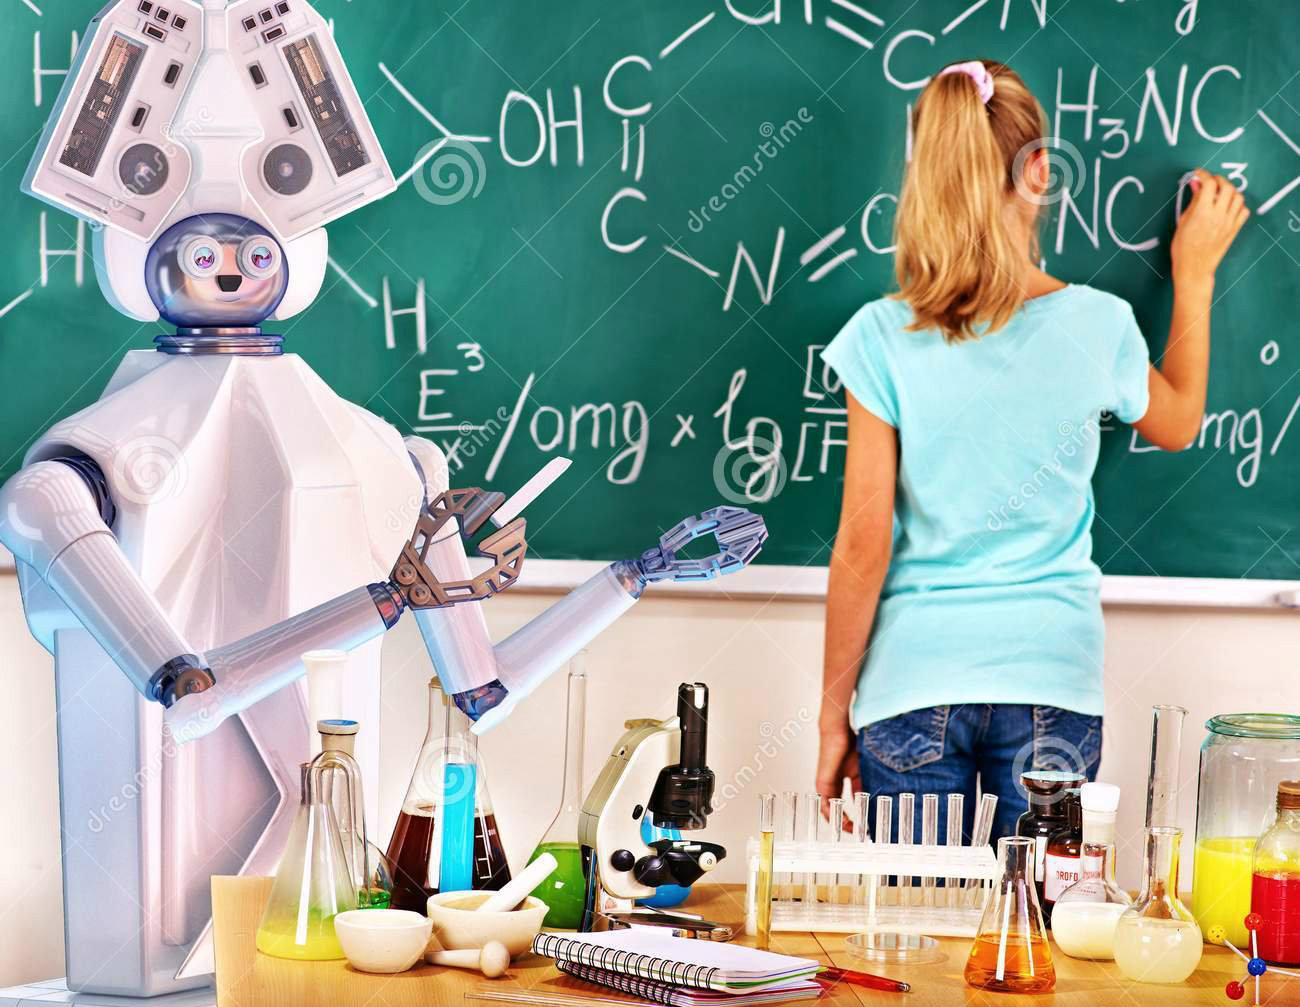 Student has interactive online learning chemistry and biology course. Image credit: Dreamstime